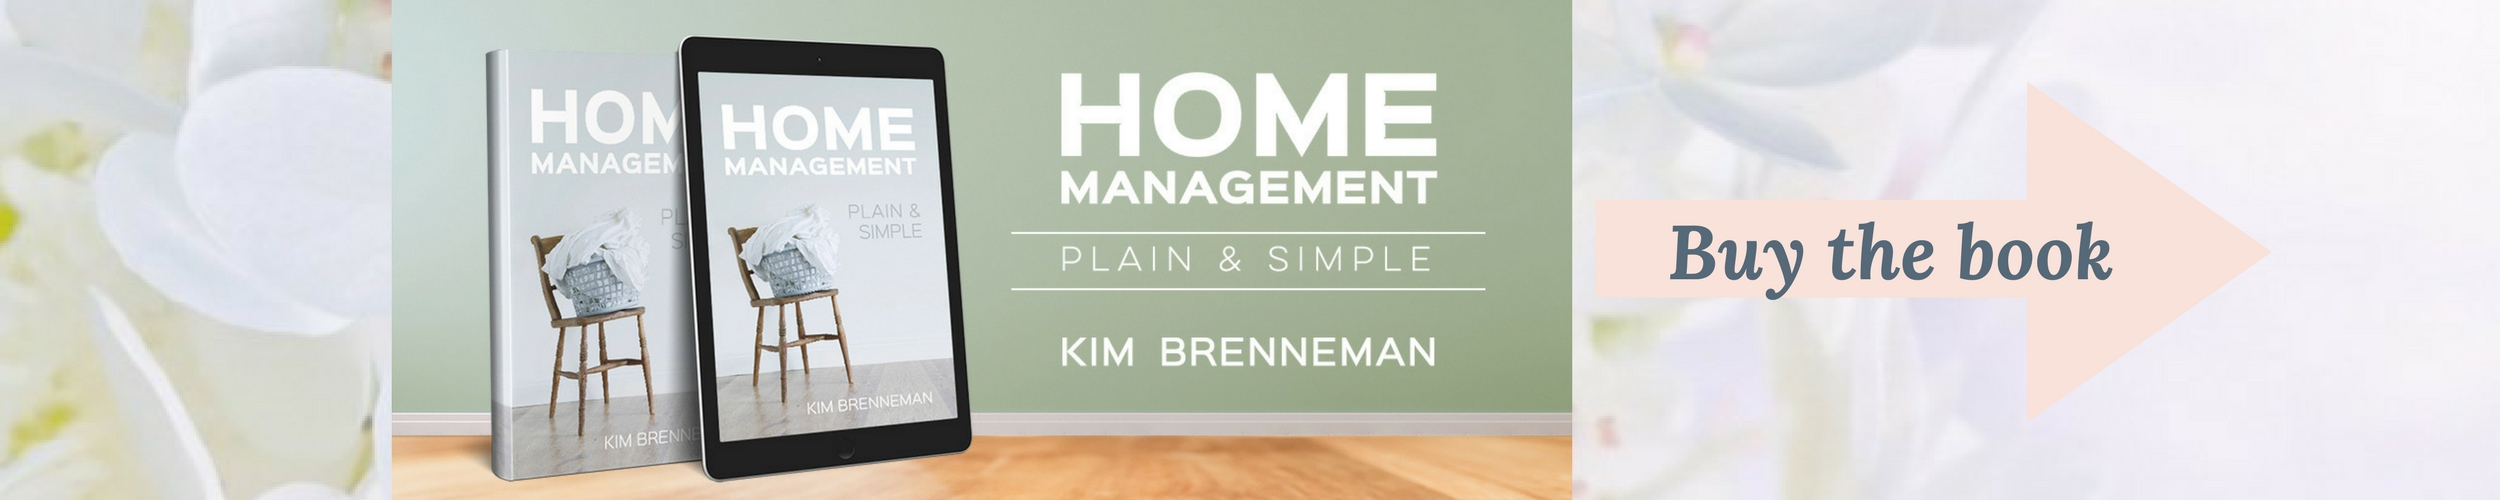 Home Management Plain and Simple